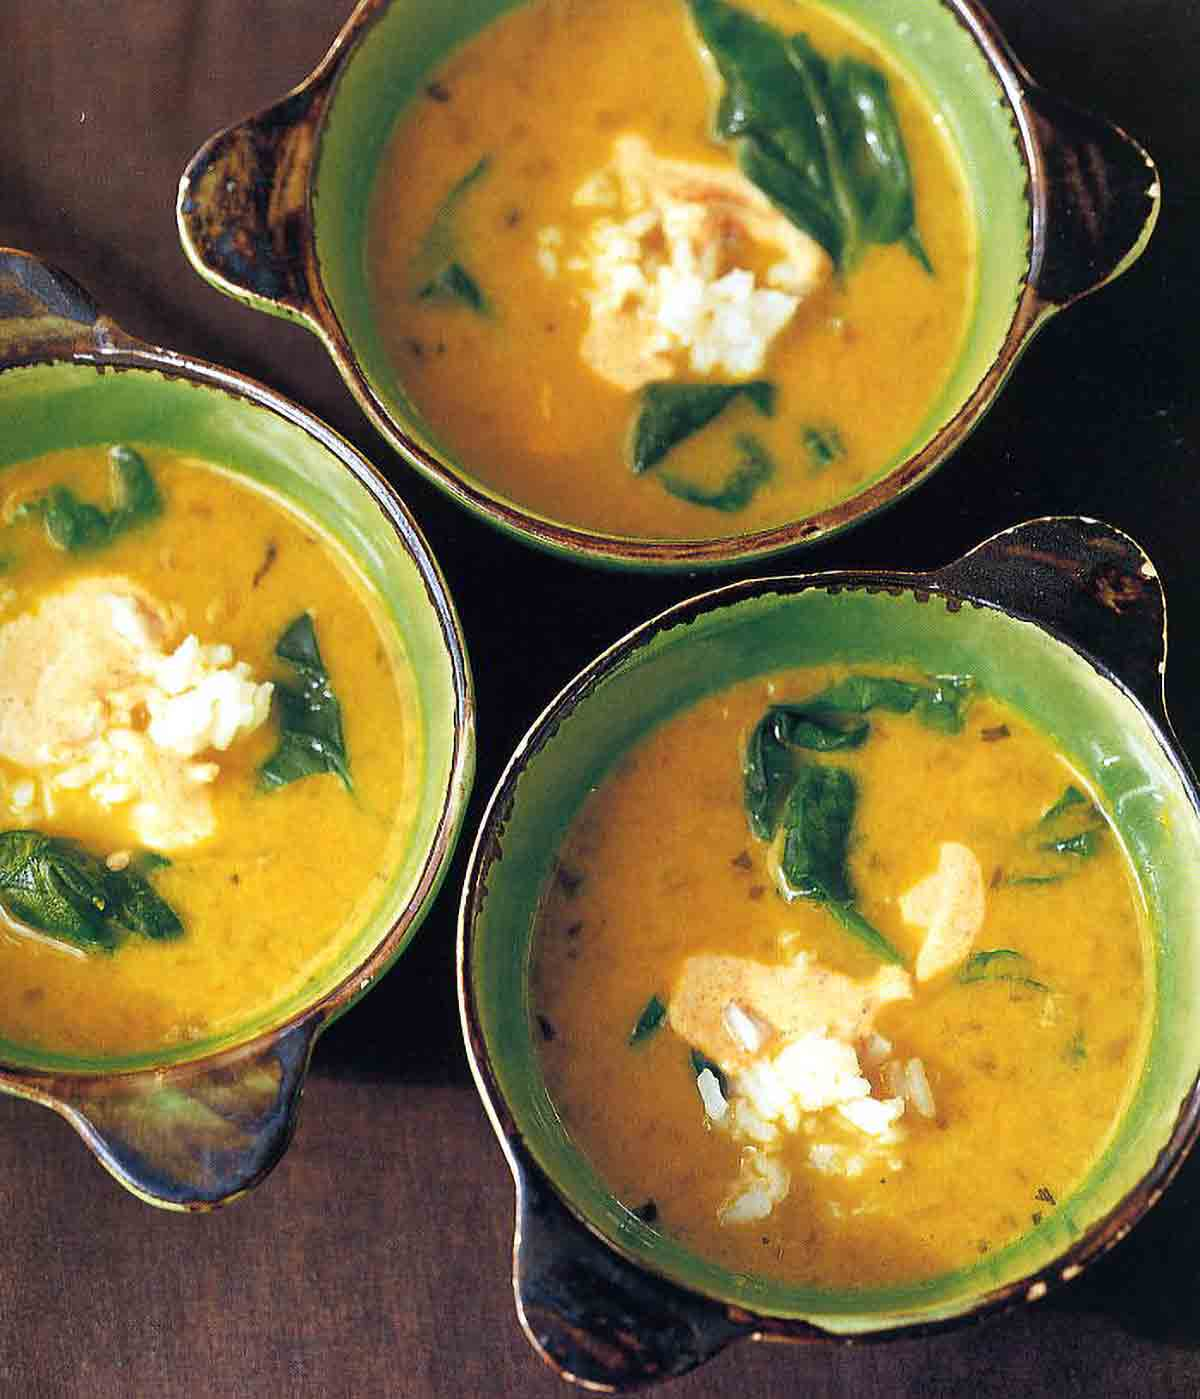 This hearty, healthy yellow pea and coconut milk soup is filled with plenty of goodness, including rice, spinach, and spices.